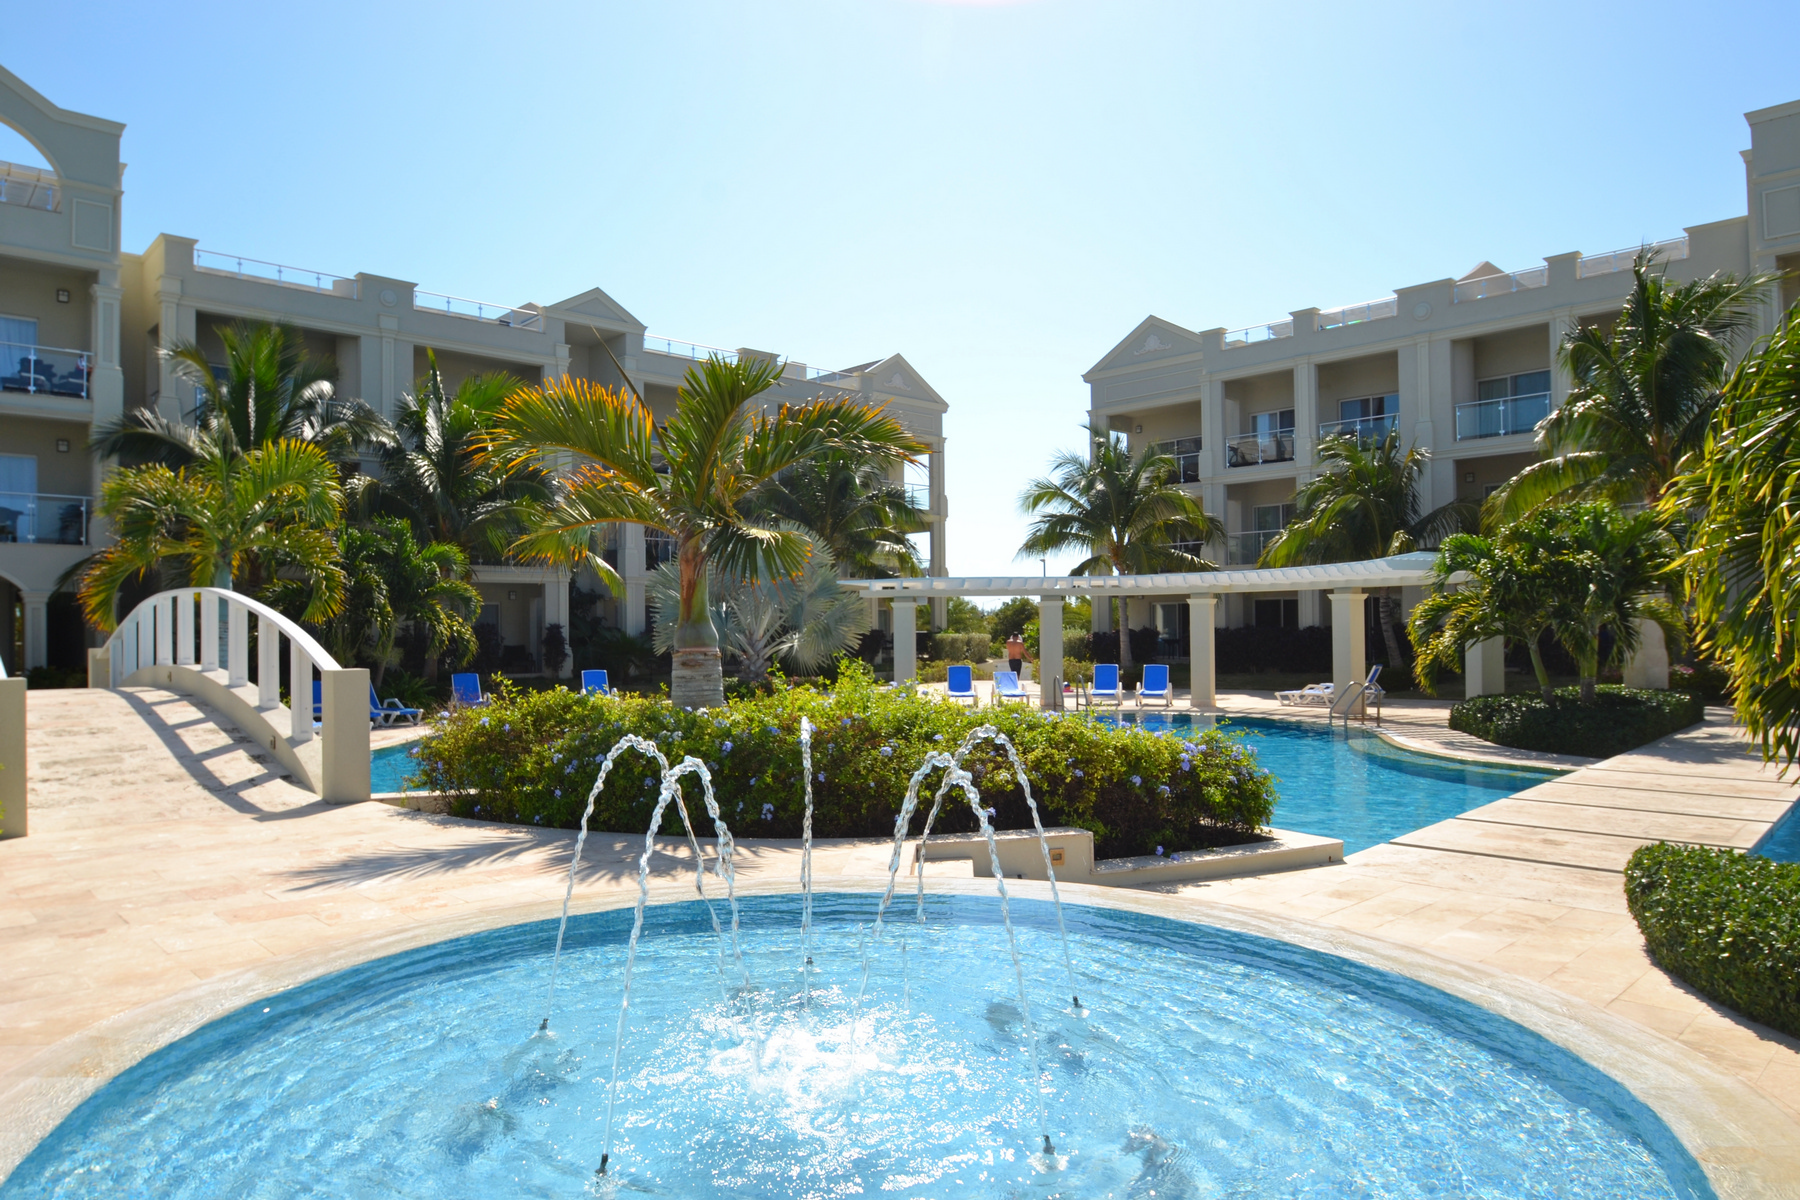 Condominium for Sale at The Atrium Resort - Suite R3-6 Gardenview Leeward, Providenciales TKCA 1ZZ Turks And Caicos Islands